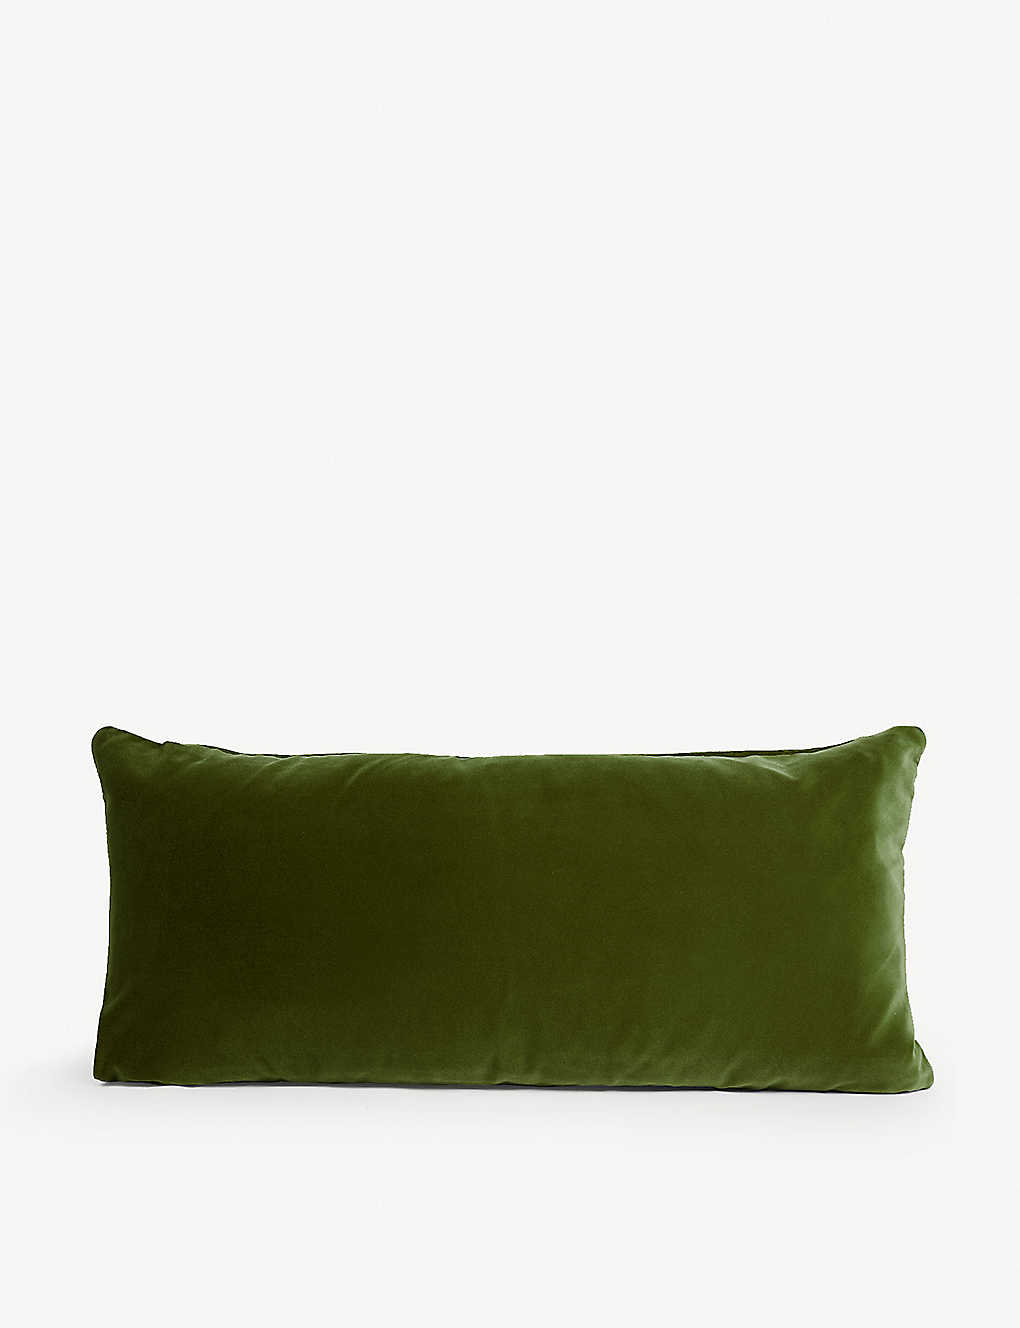 SOHO HOME: Monroe velvet cushion 27cm x 60cm